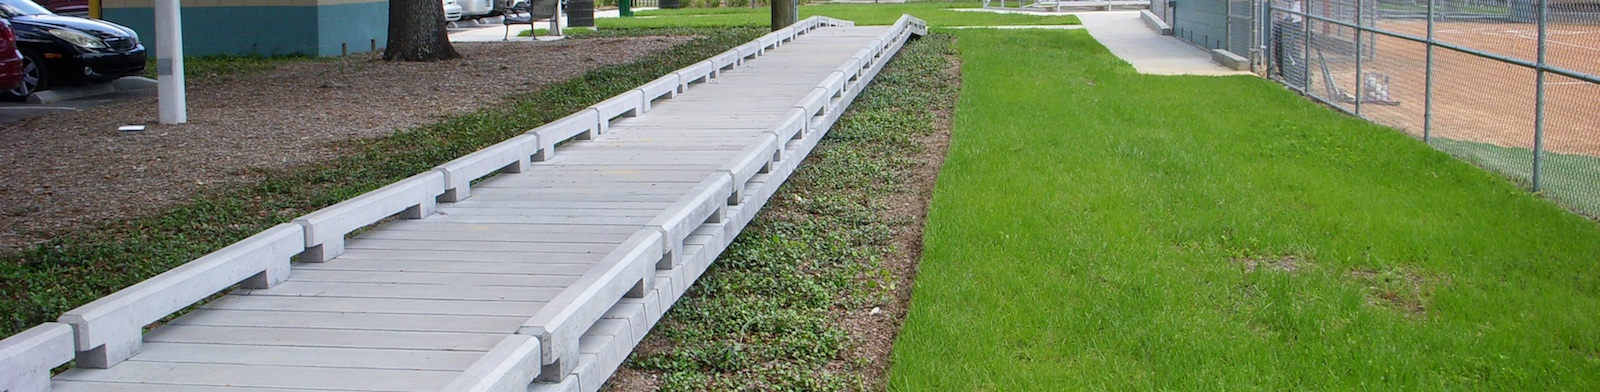 Springhill_Tampa_FL_Concrete_Boardwalk_-_Urban_Walkway.jpg